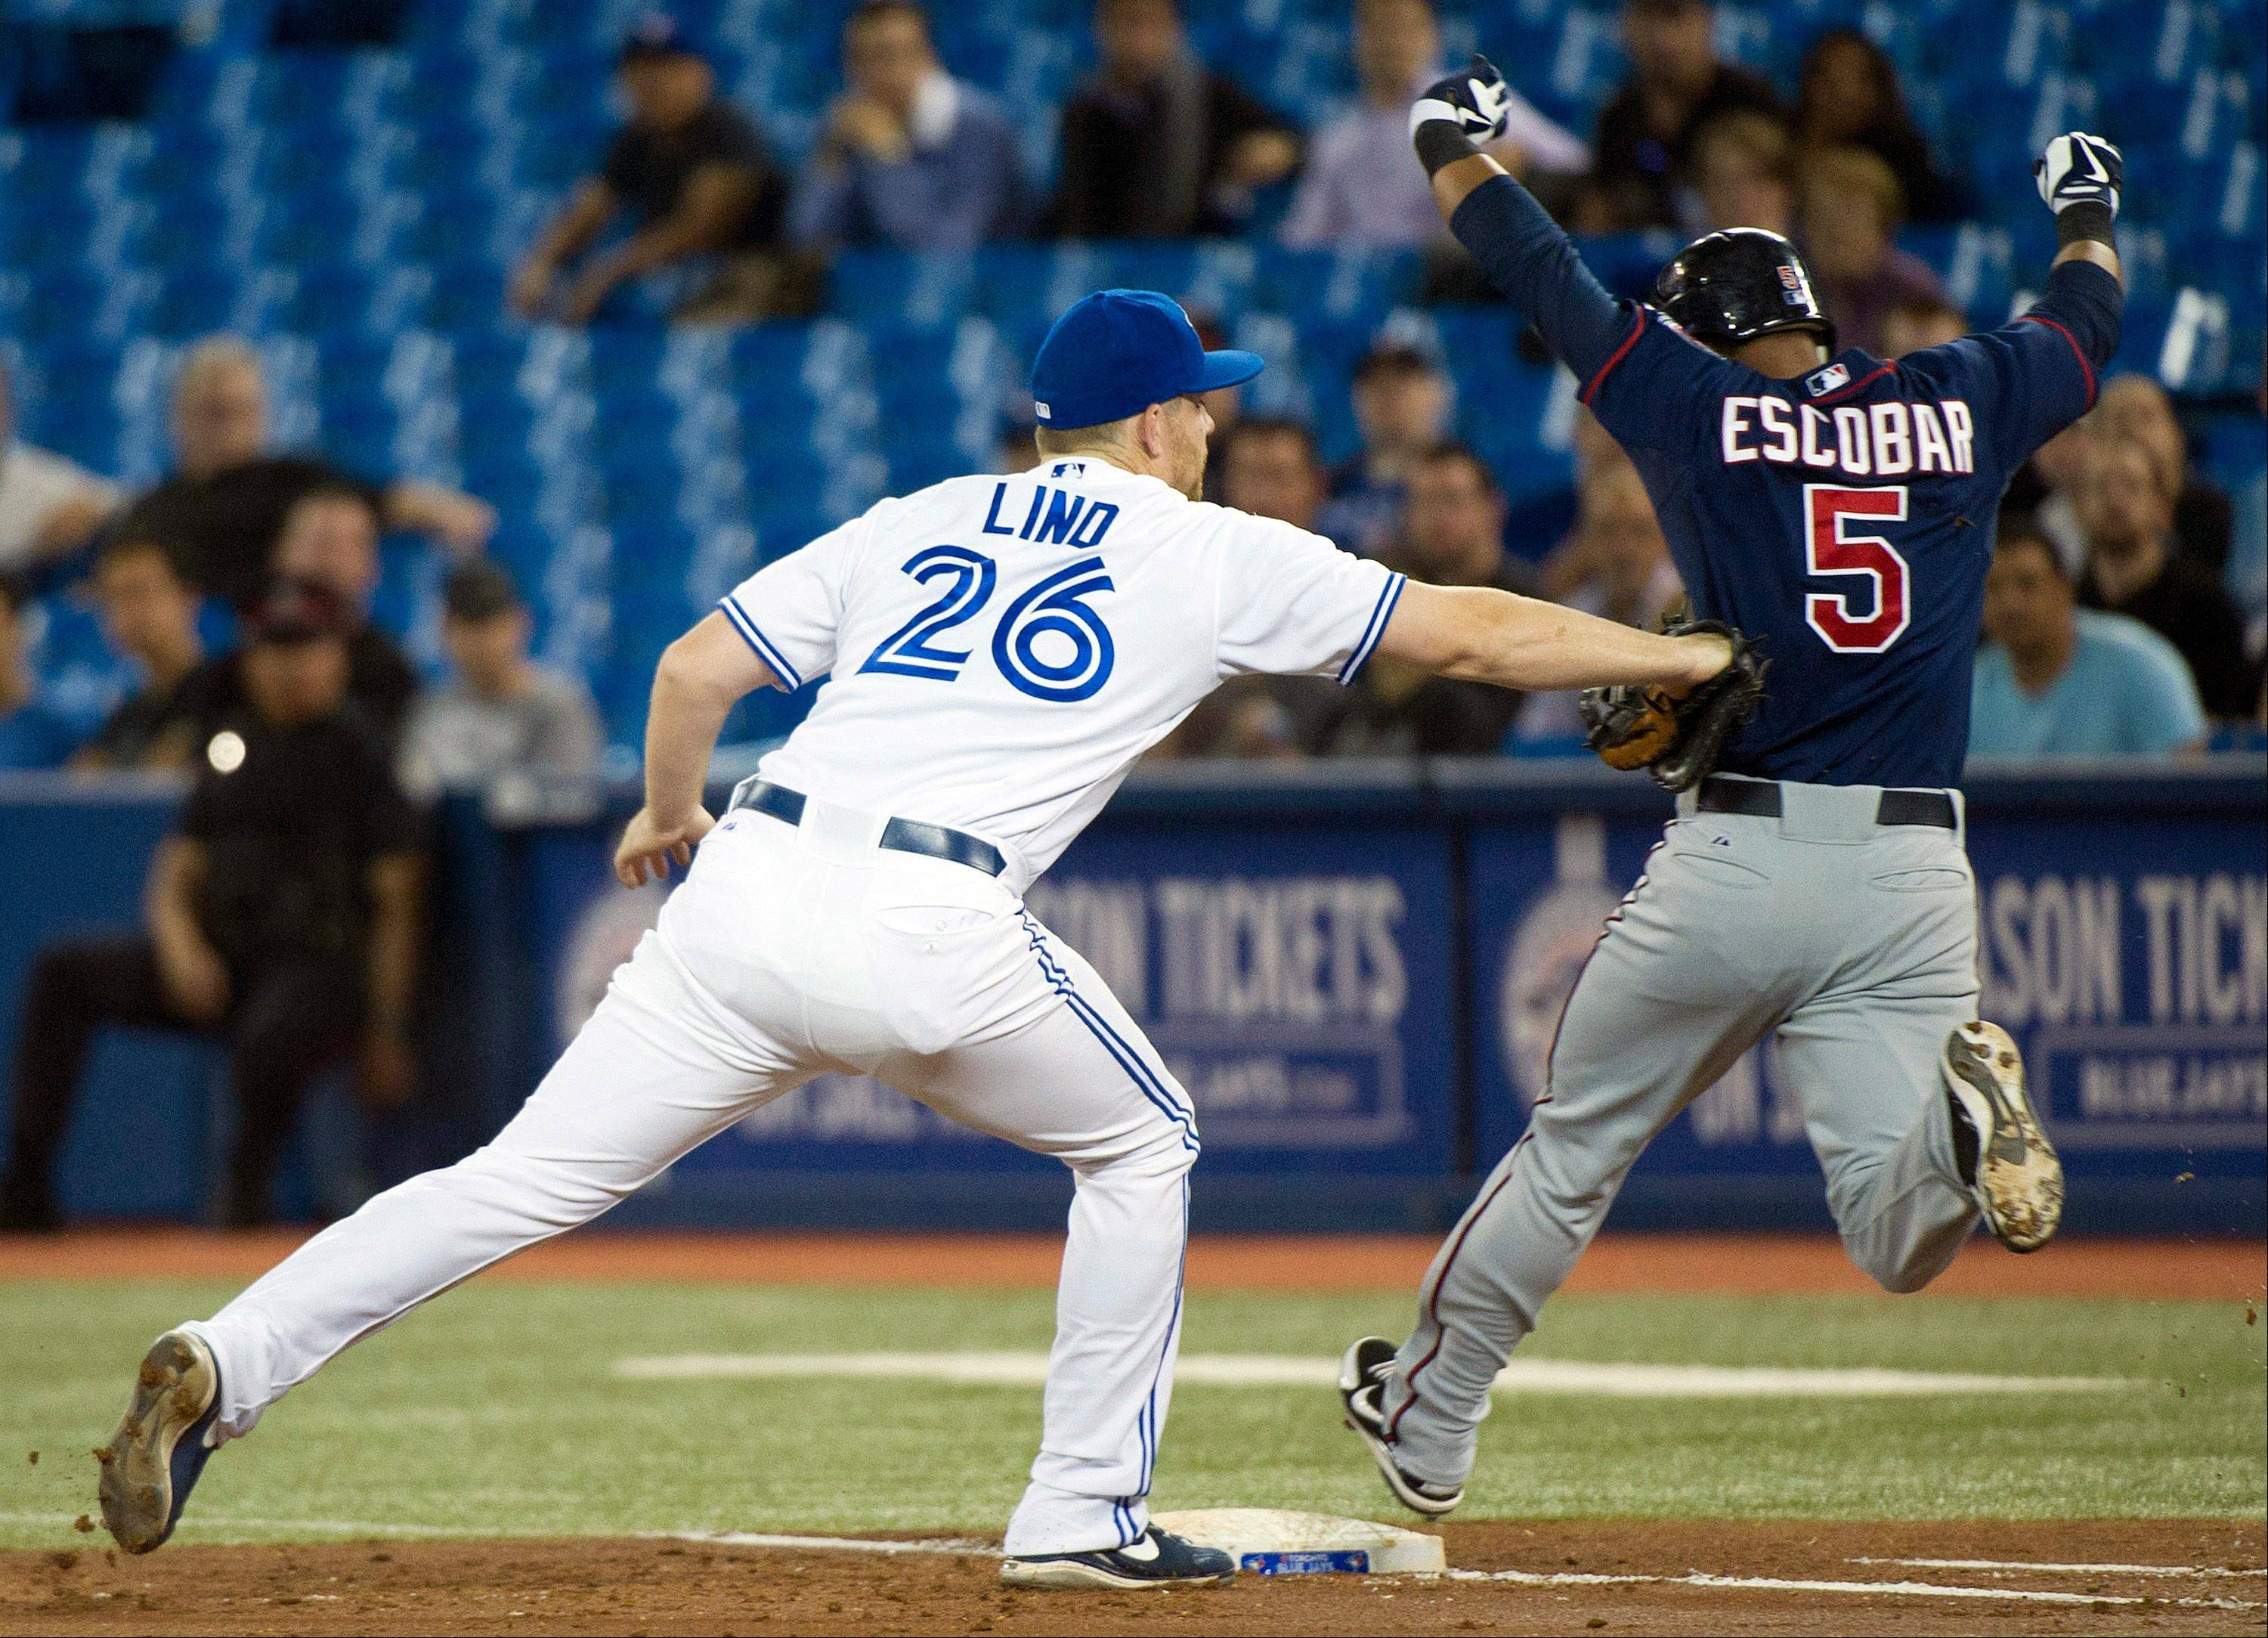 Blue Jays first baseman Adam Lind tags out Minnesota�s Eduardo Escobar during third inning Tuesday in Toronto.